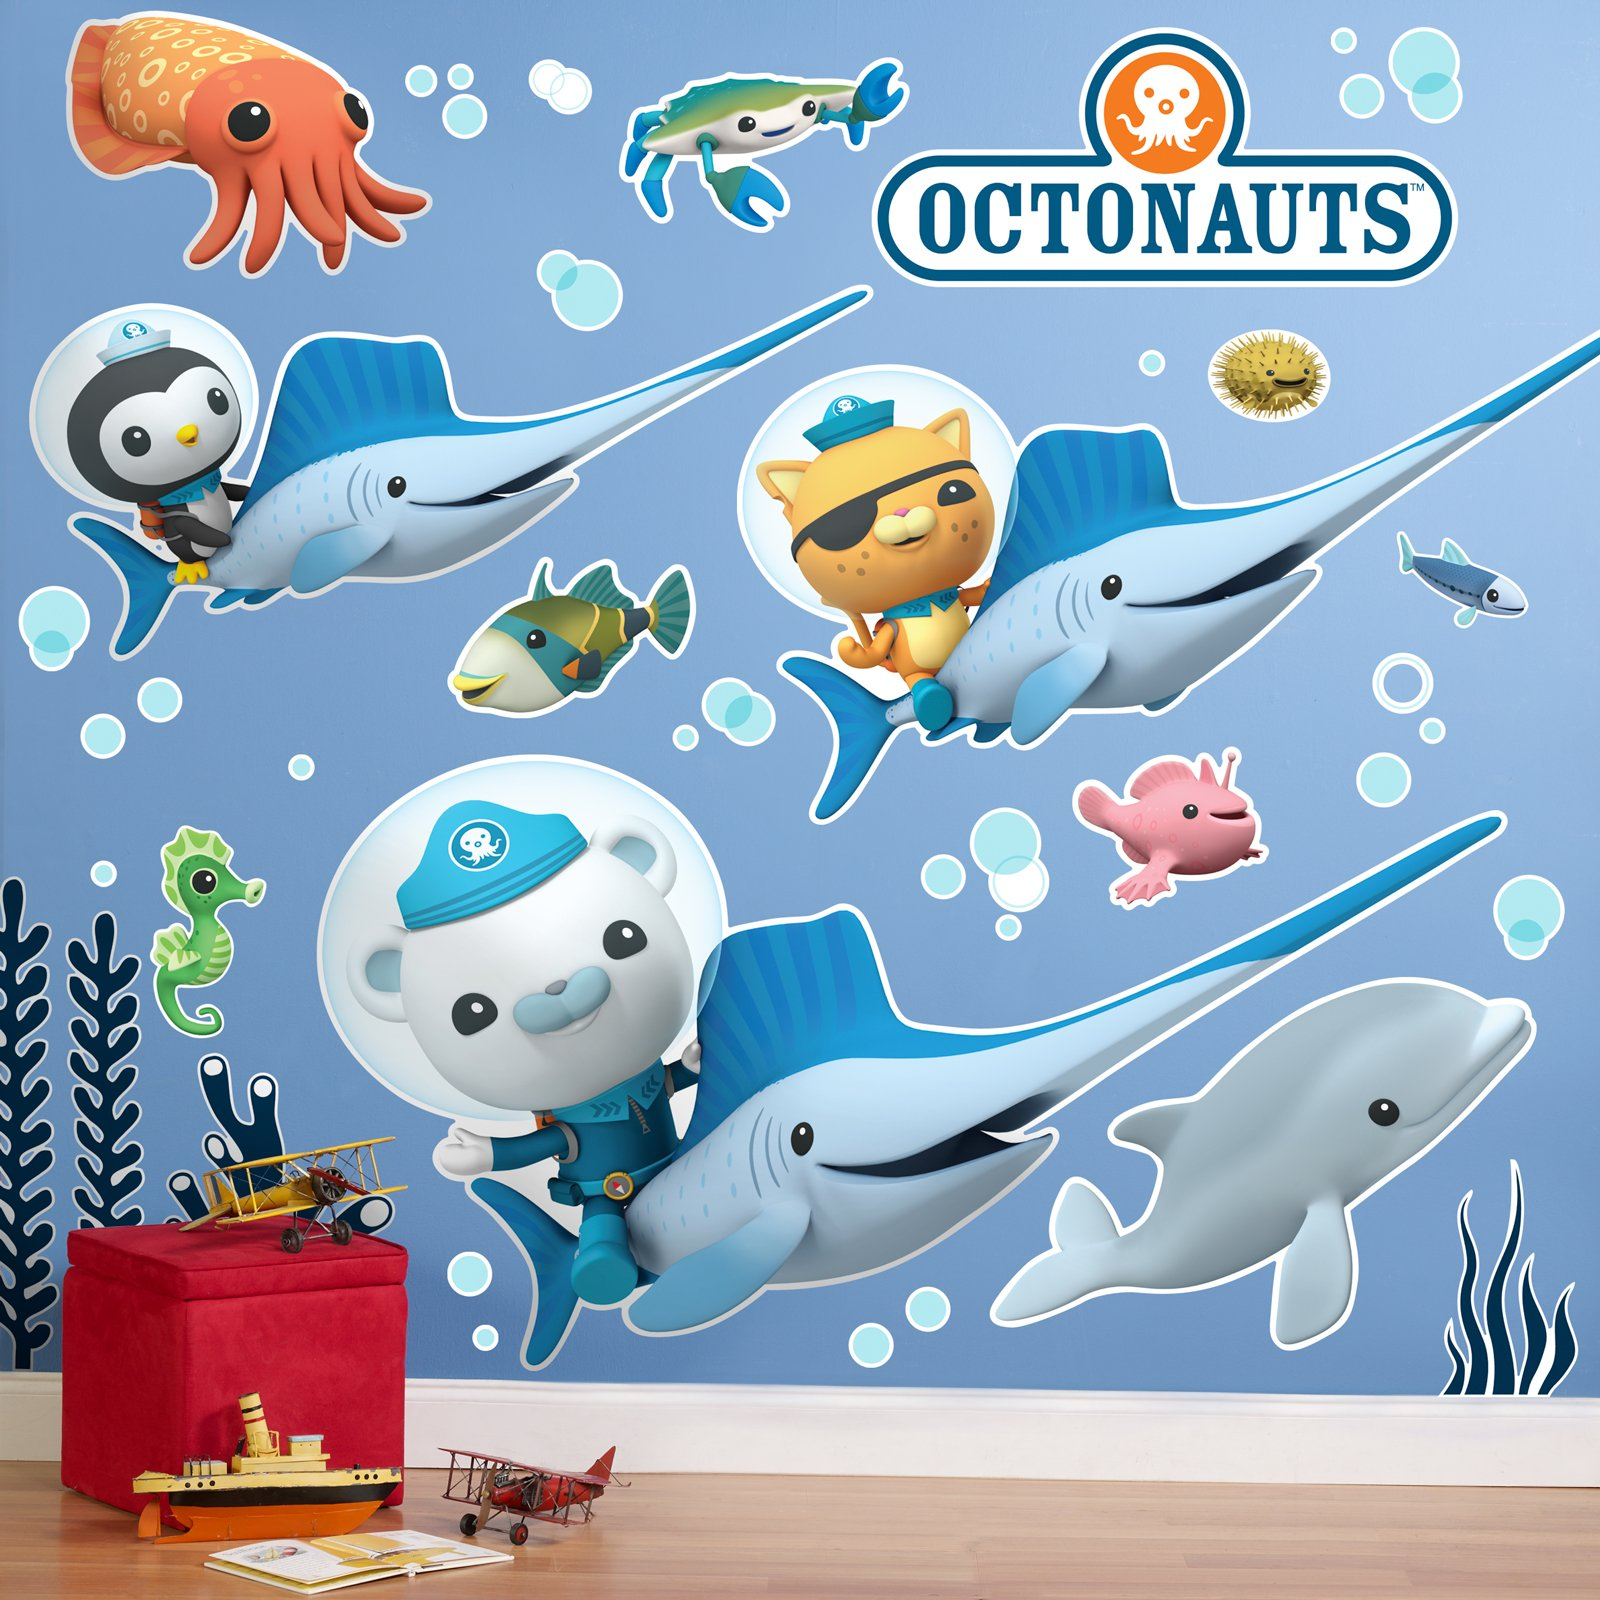 BirthdayExpress The Octonauts Room Decor - Giant Wall Decals, Party Supplies by BirthdayExpress (Image #1)